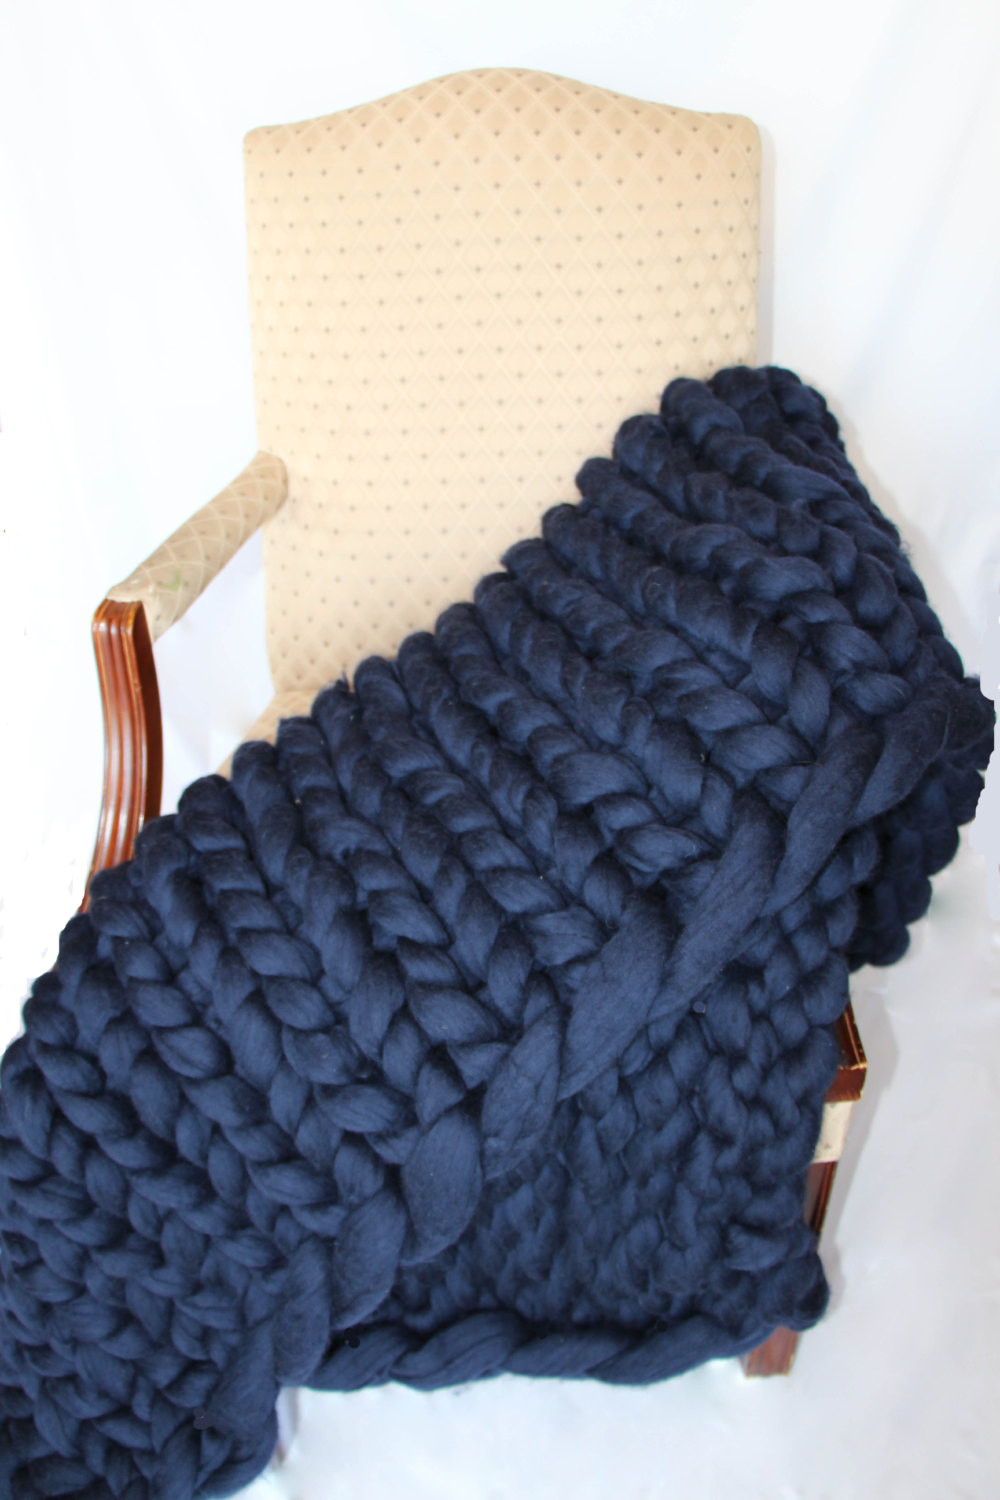 Giant Yarn Blanket New Promo Sale Super Chunky Knit Blanket Wool Knit Blanket Of Unique 44 Images Giant Yarn Blanket